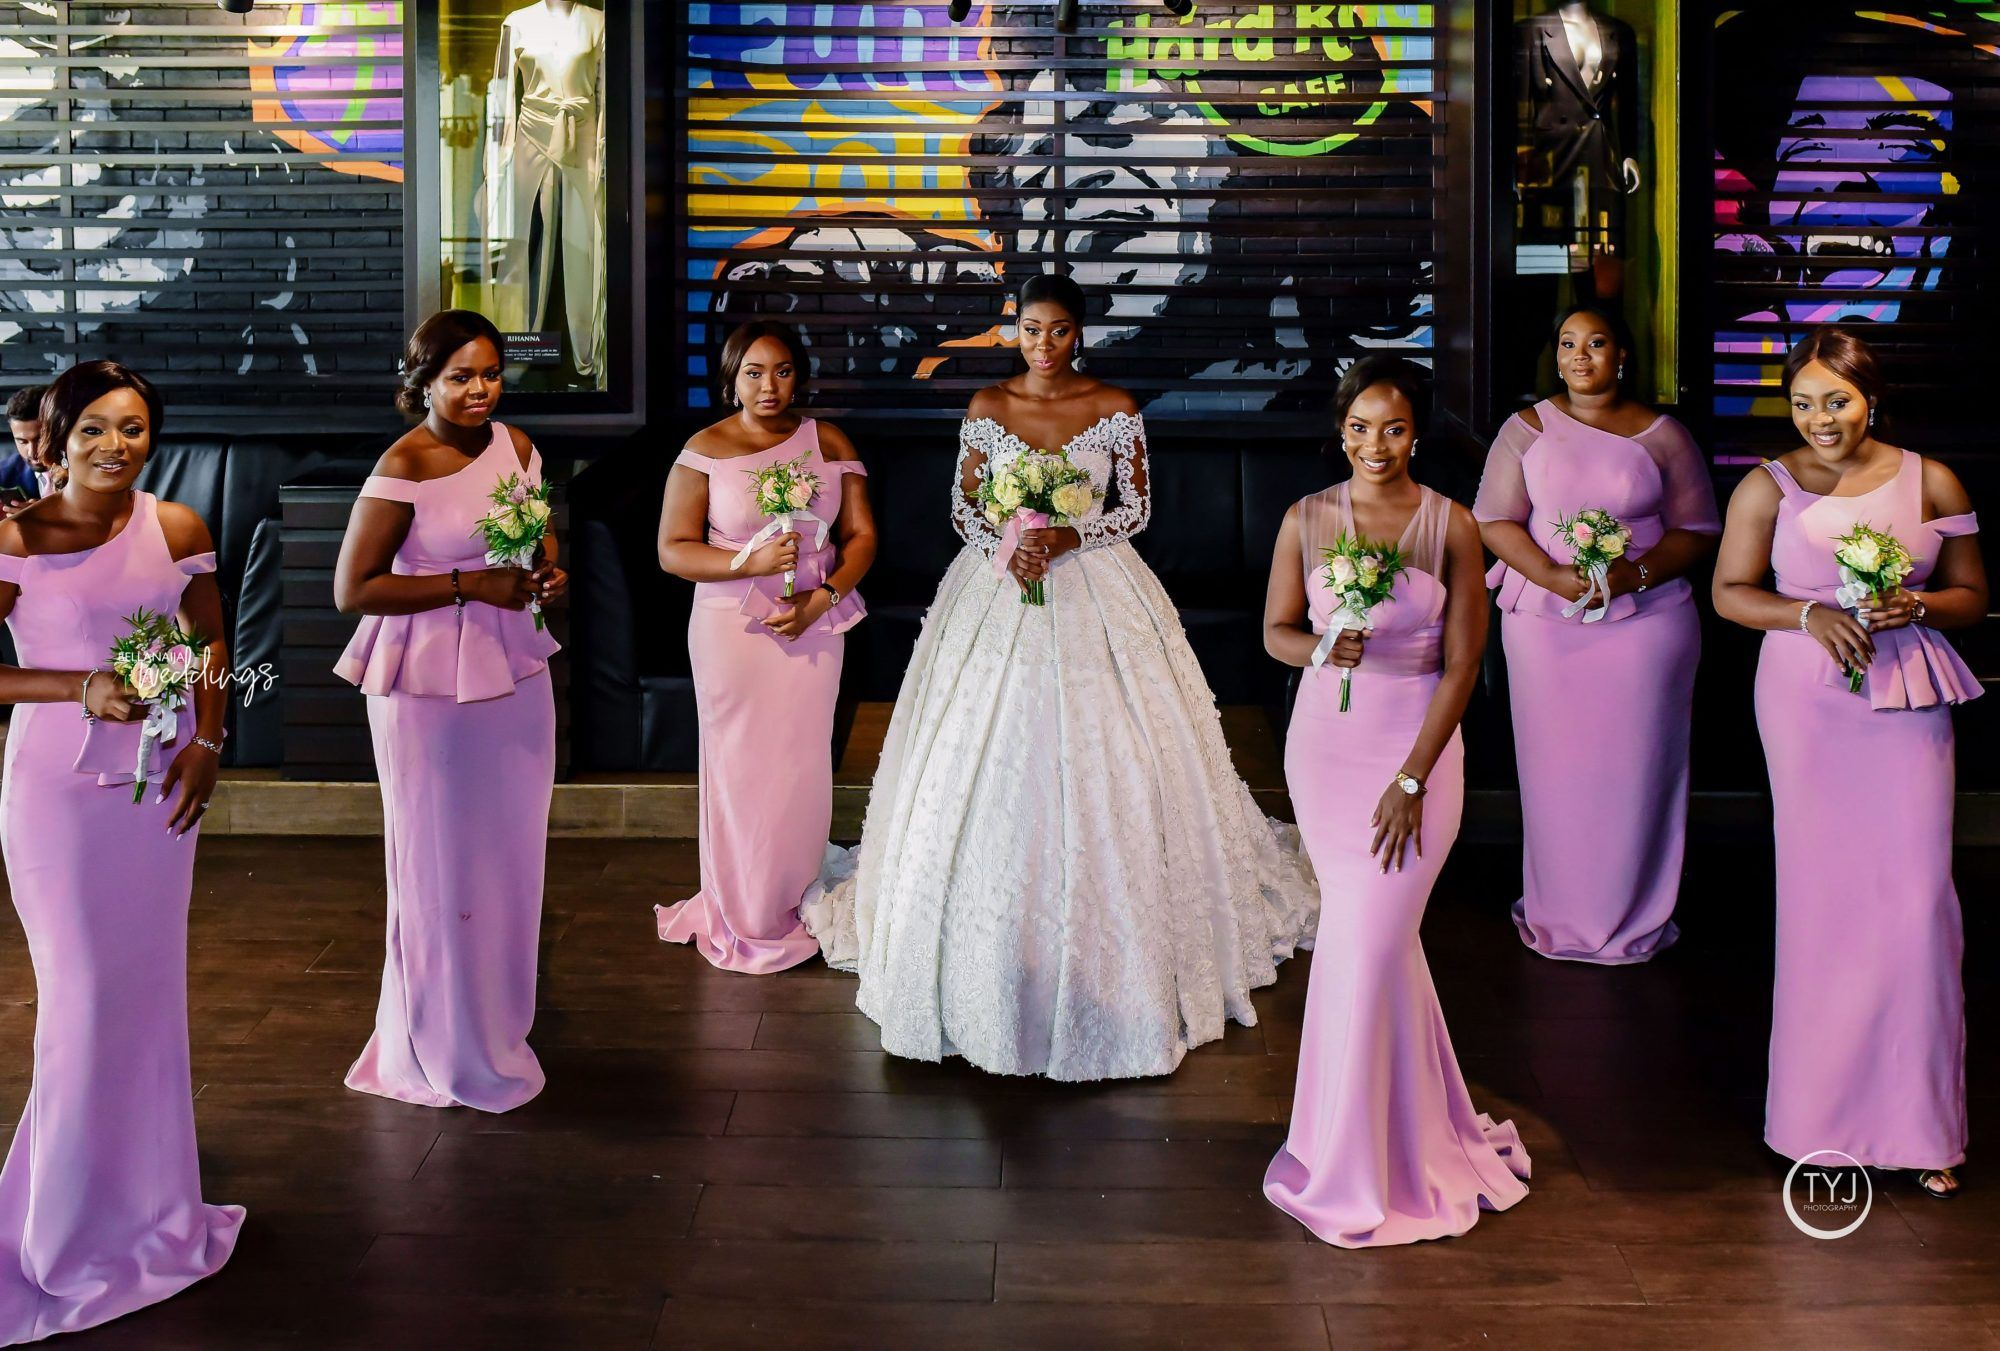 This Bride Made A Fashion Statement In 2 April By Kunbi Dresses For Her Wedding Bellana Bridal Shower Dress Bella Naija Weddings Beautiful Bridesmaid Dresses